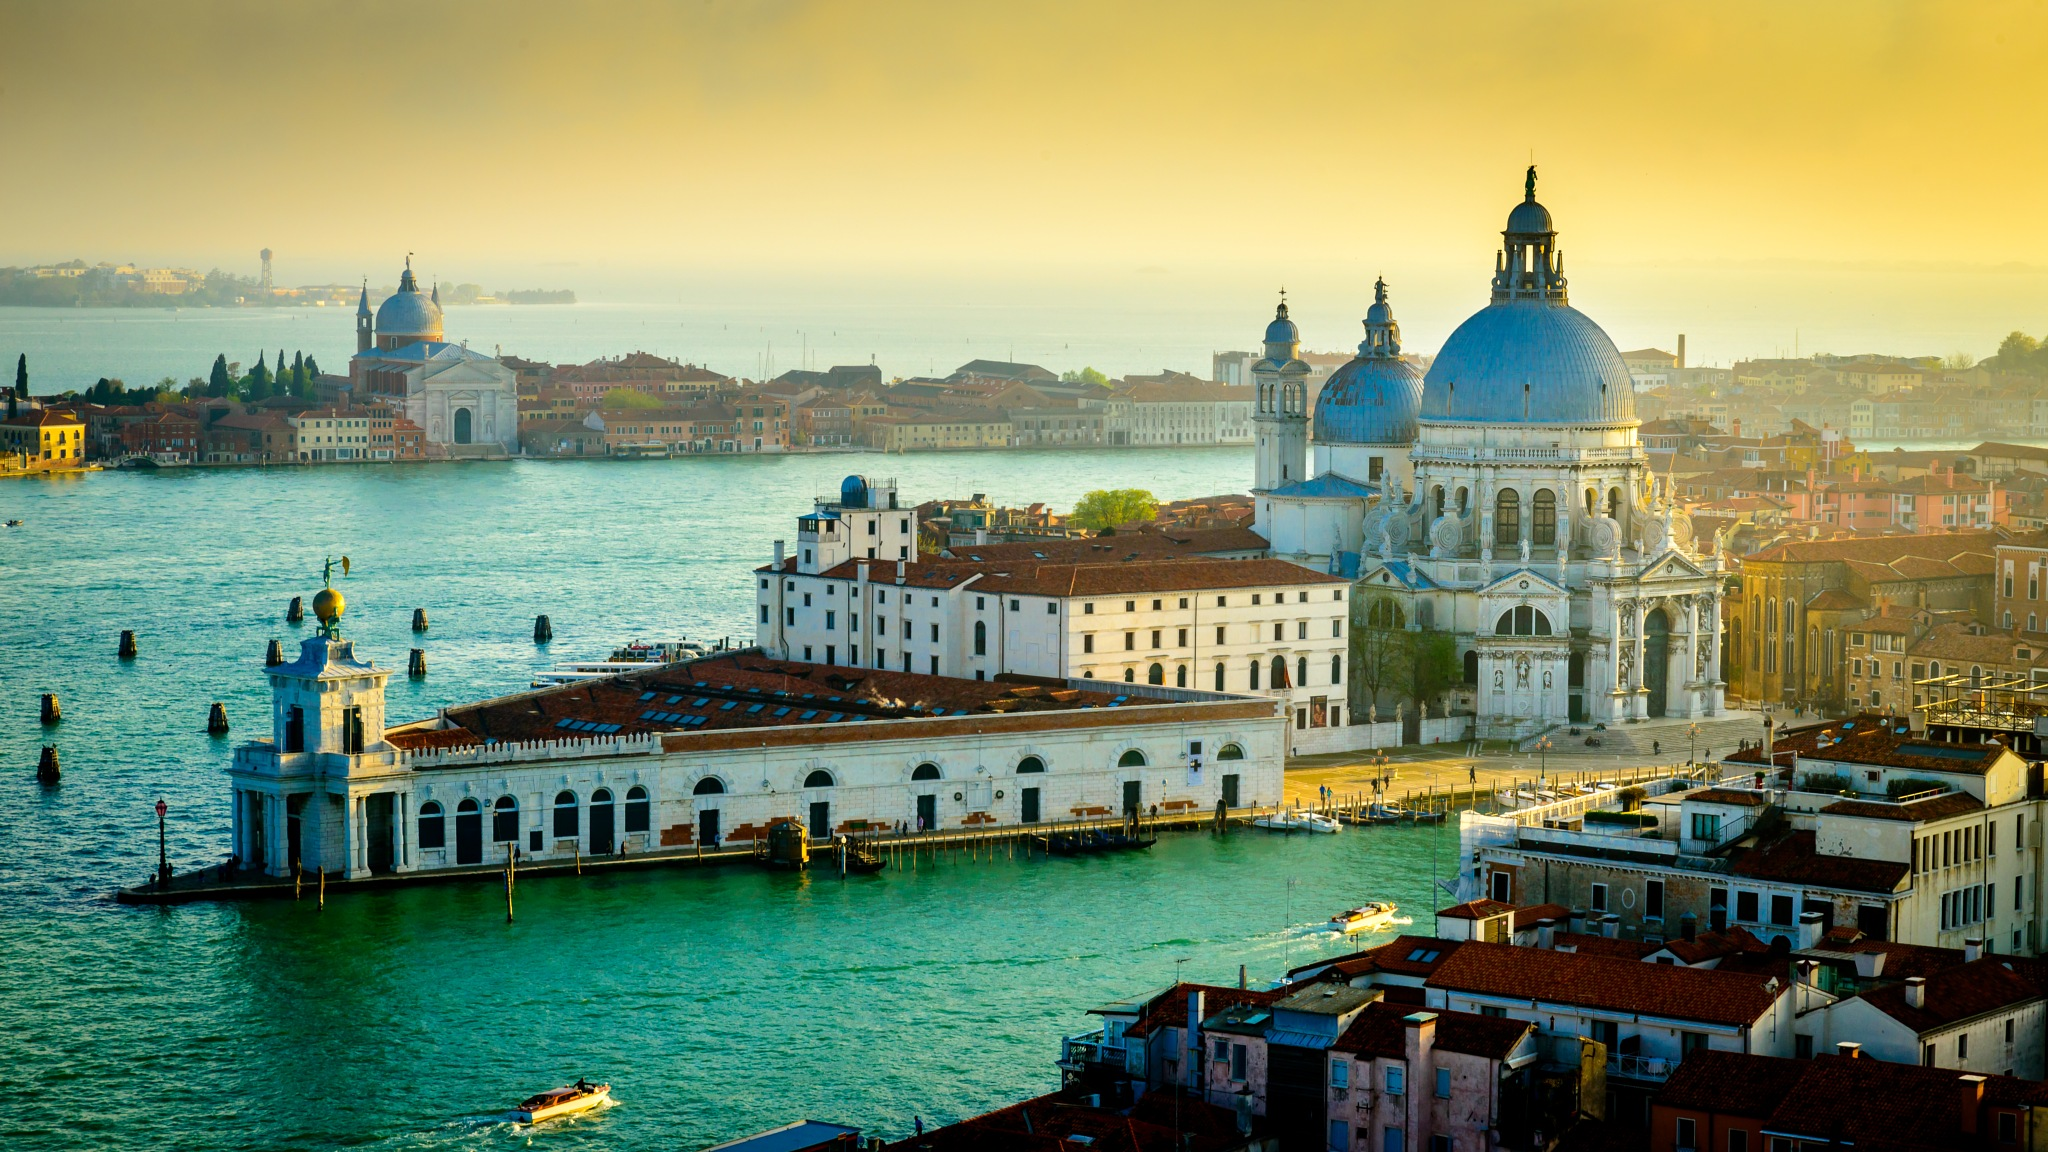 Venice at sunset by David Guo